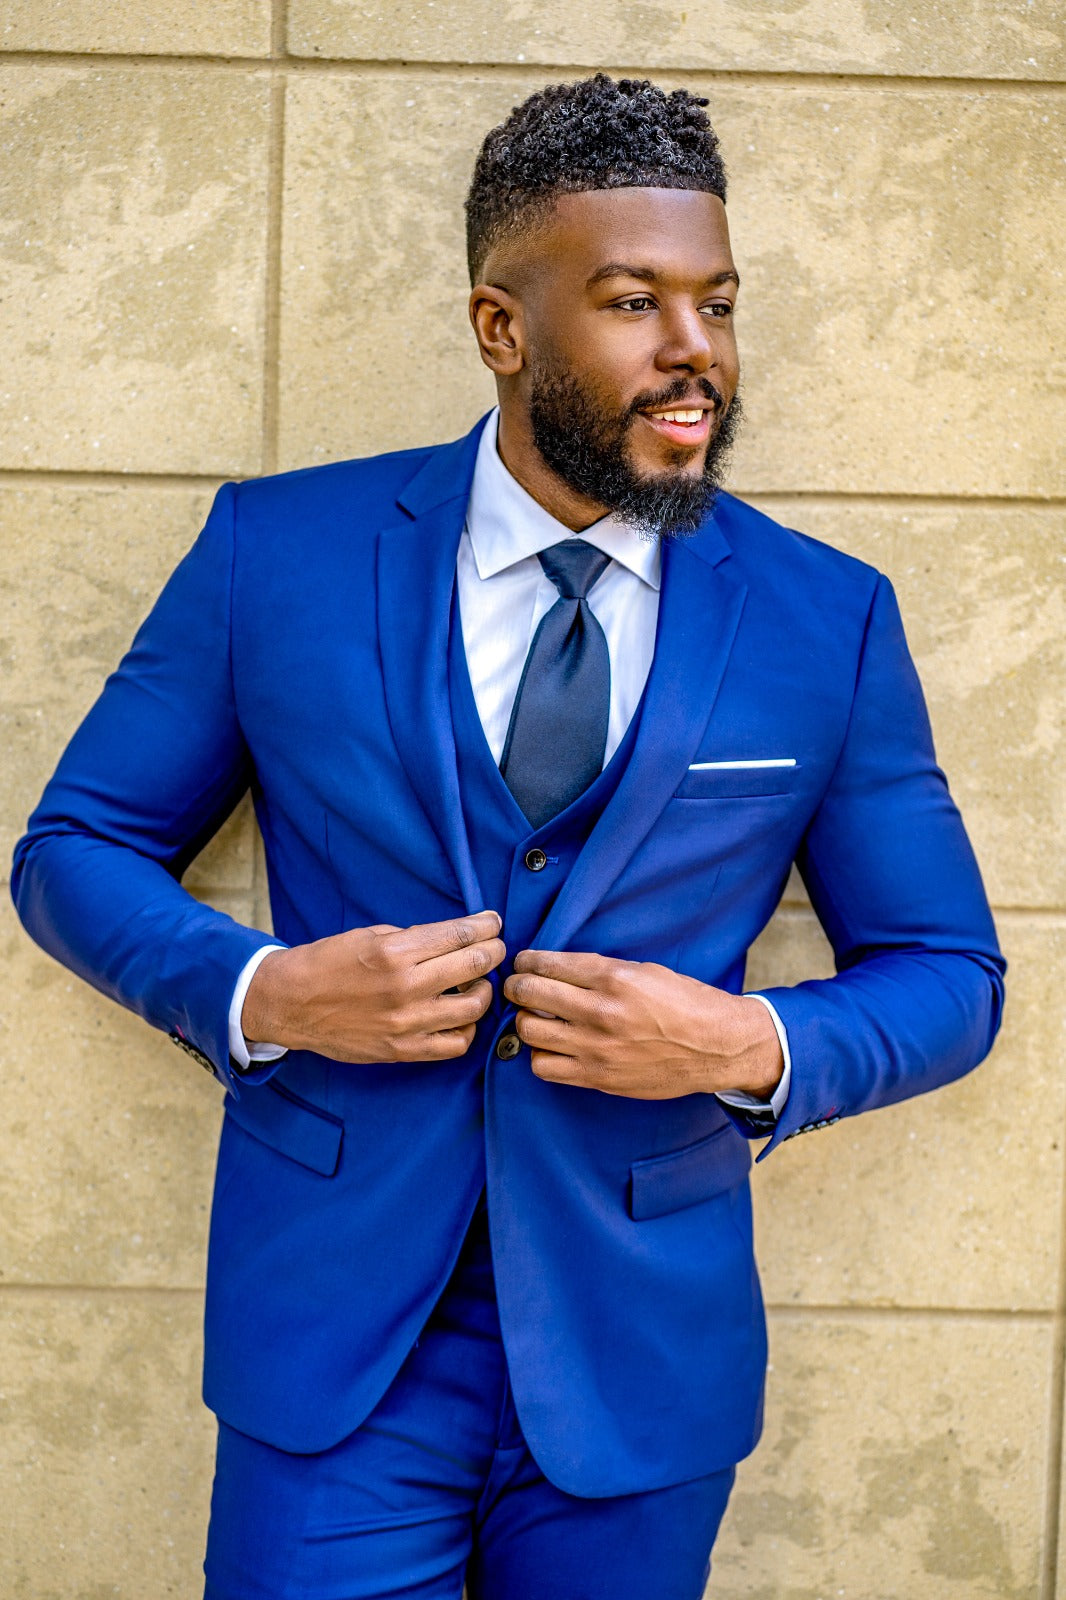 Indigo Blue 3 Piece Suit